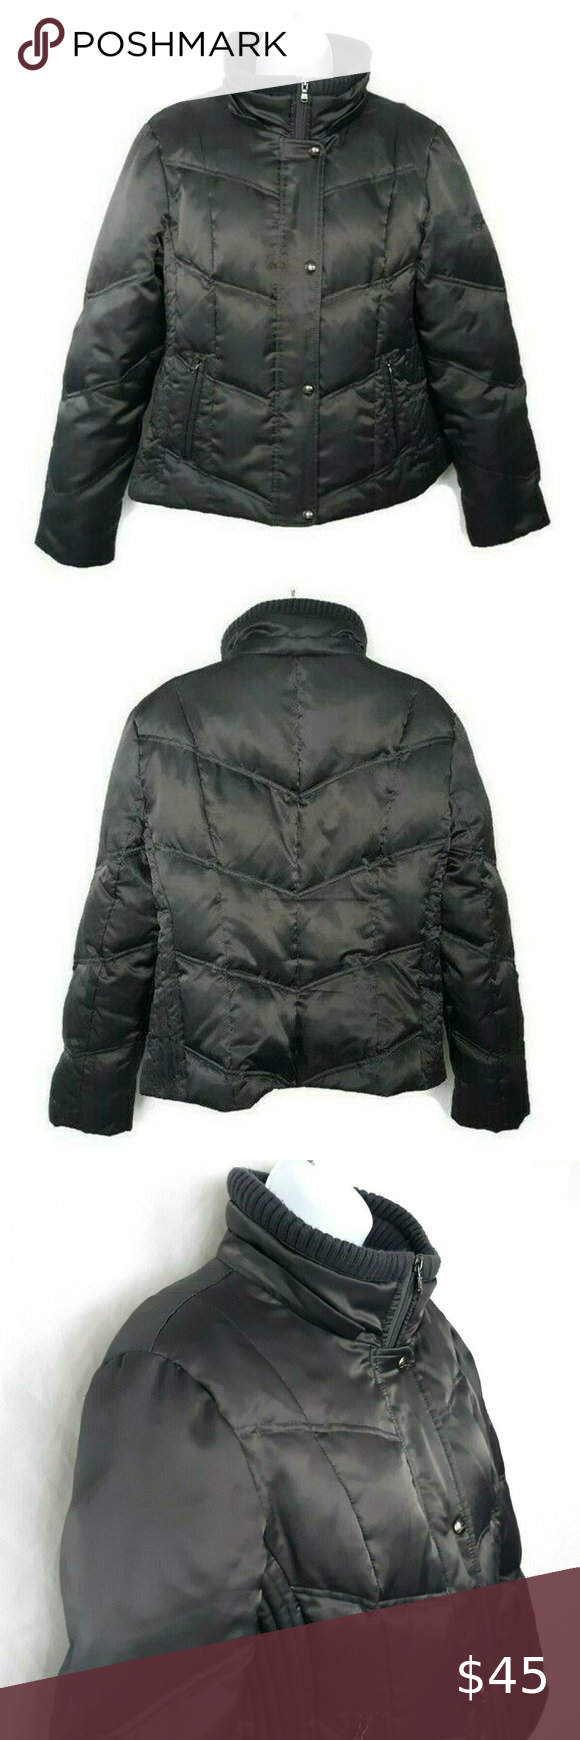 Guess Gray Quilted Down Insulated Puffer Jacket Jackets Puffer Jackets Puffer [ 1740 x 580 Pixel ]